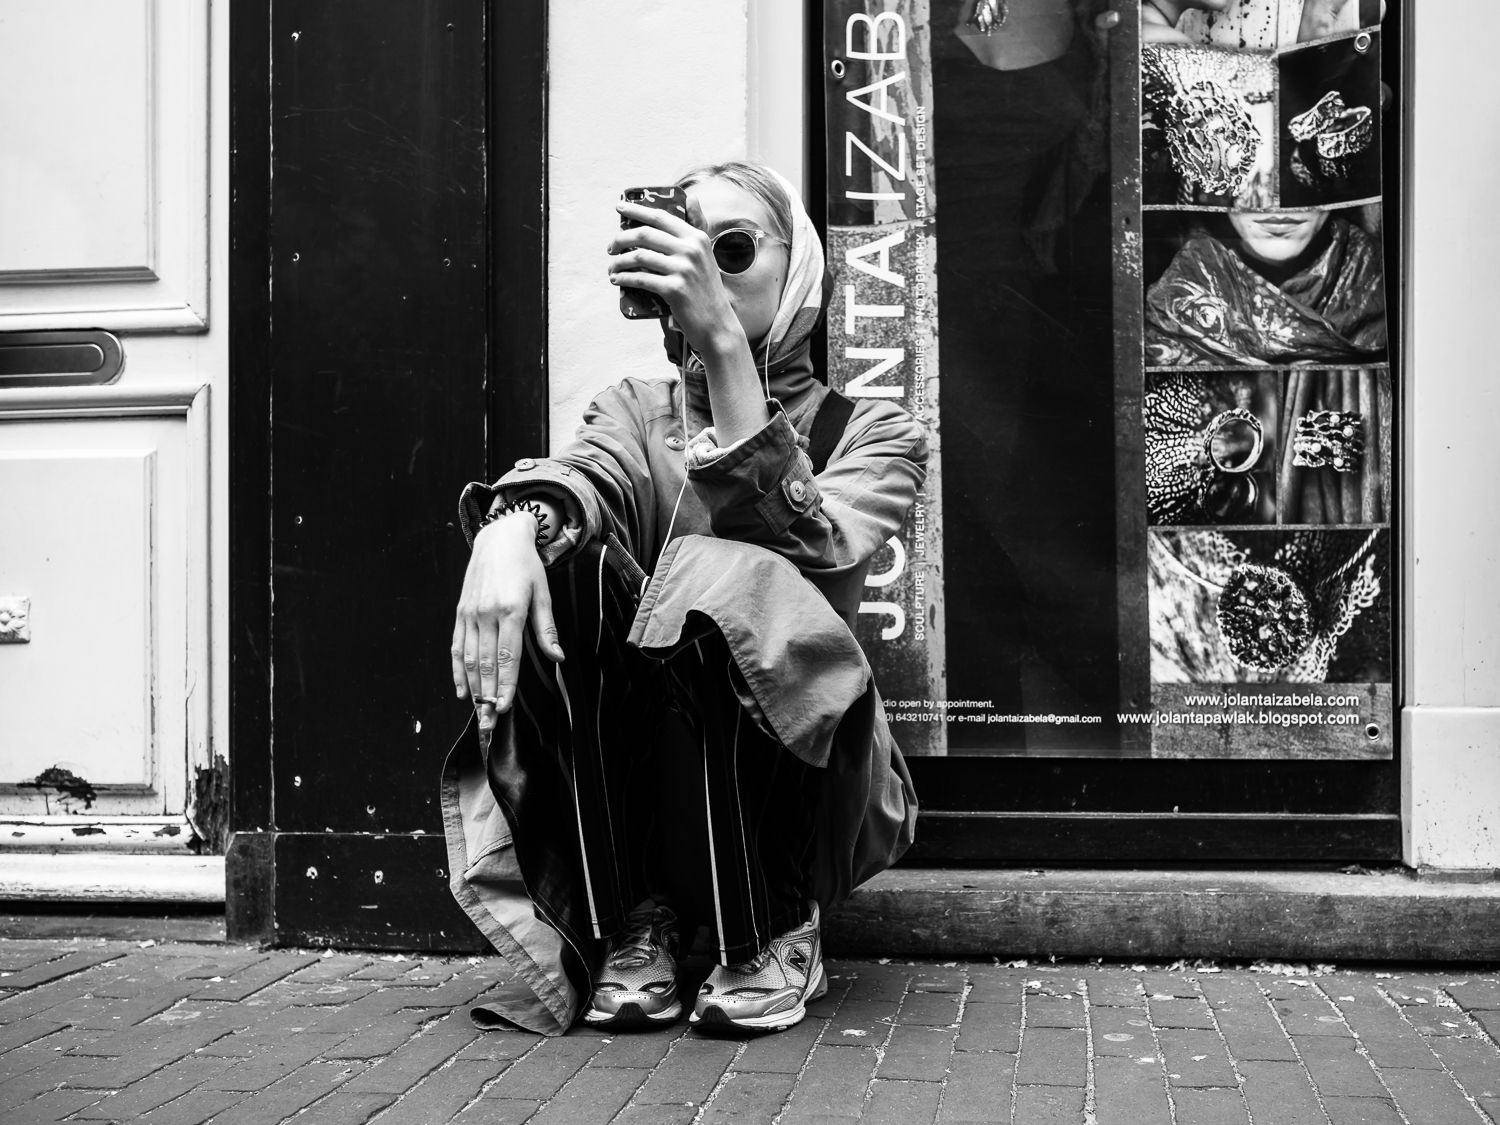 I made this photo during my workshop street photography in Amsterdam in May 2018. I immediately saw that she would fit in my   Undercover   series. I had to act fast as I wanted her face not recognisable. What I like is the way she is sitting, smoking a joint and talking to her phone. This is one of the first photos I made with my new Olympus 17mm 1:1.2 PRO lense. What a fantastic lens! Happy to be Olympus Visionary ;-)  Olympus OM-D E-M1 Mark 2 with Olympus M.ZUIKO 17mm 1:1.2 PRO